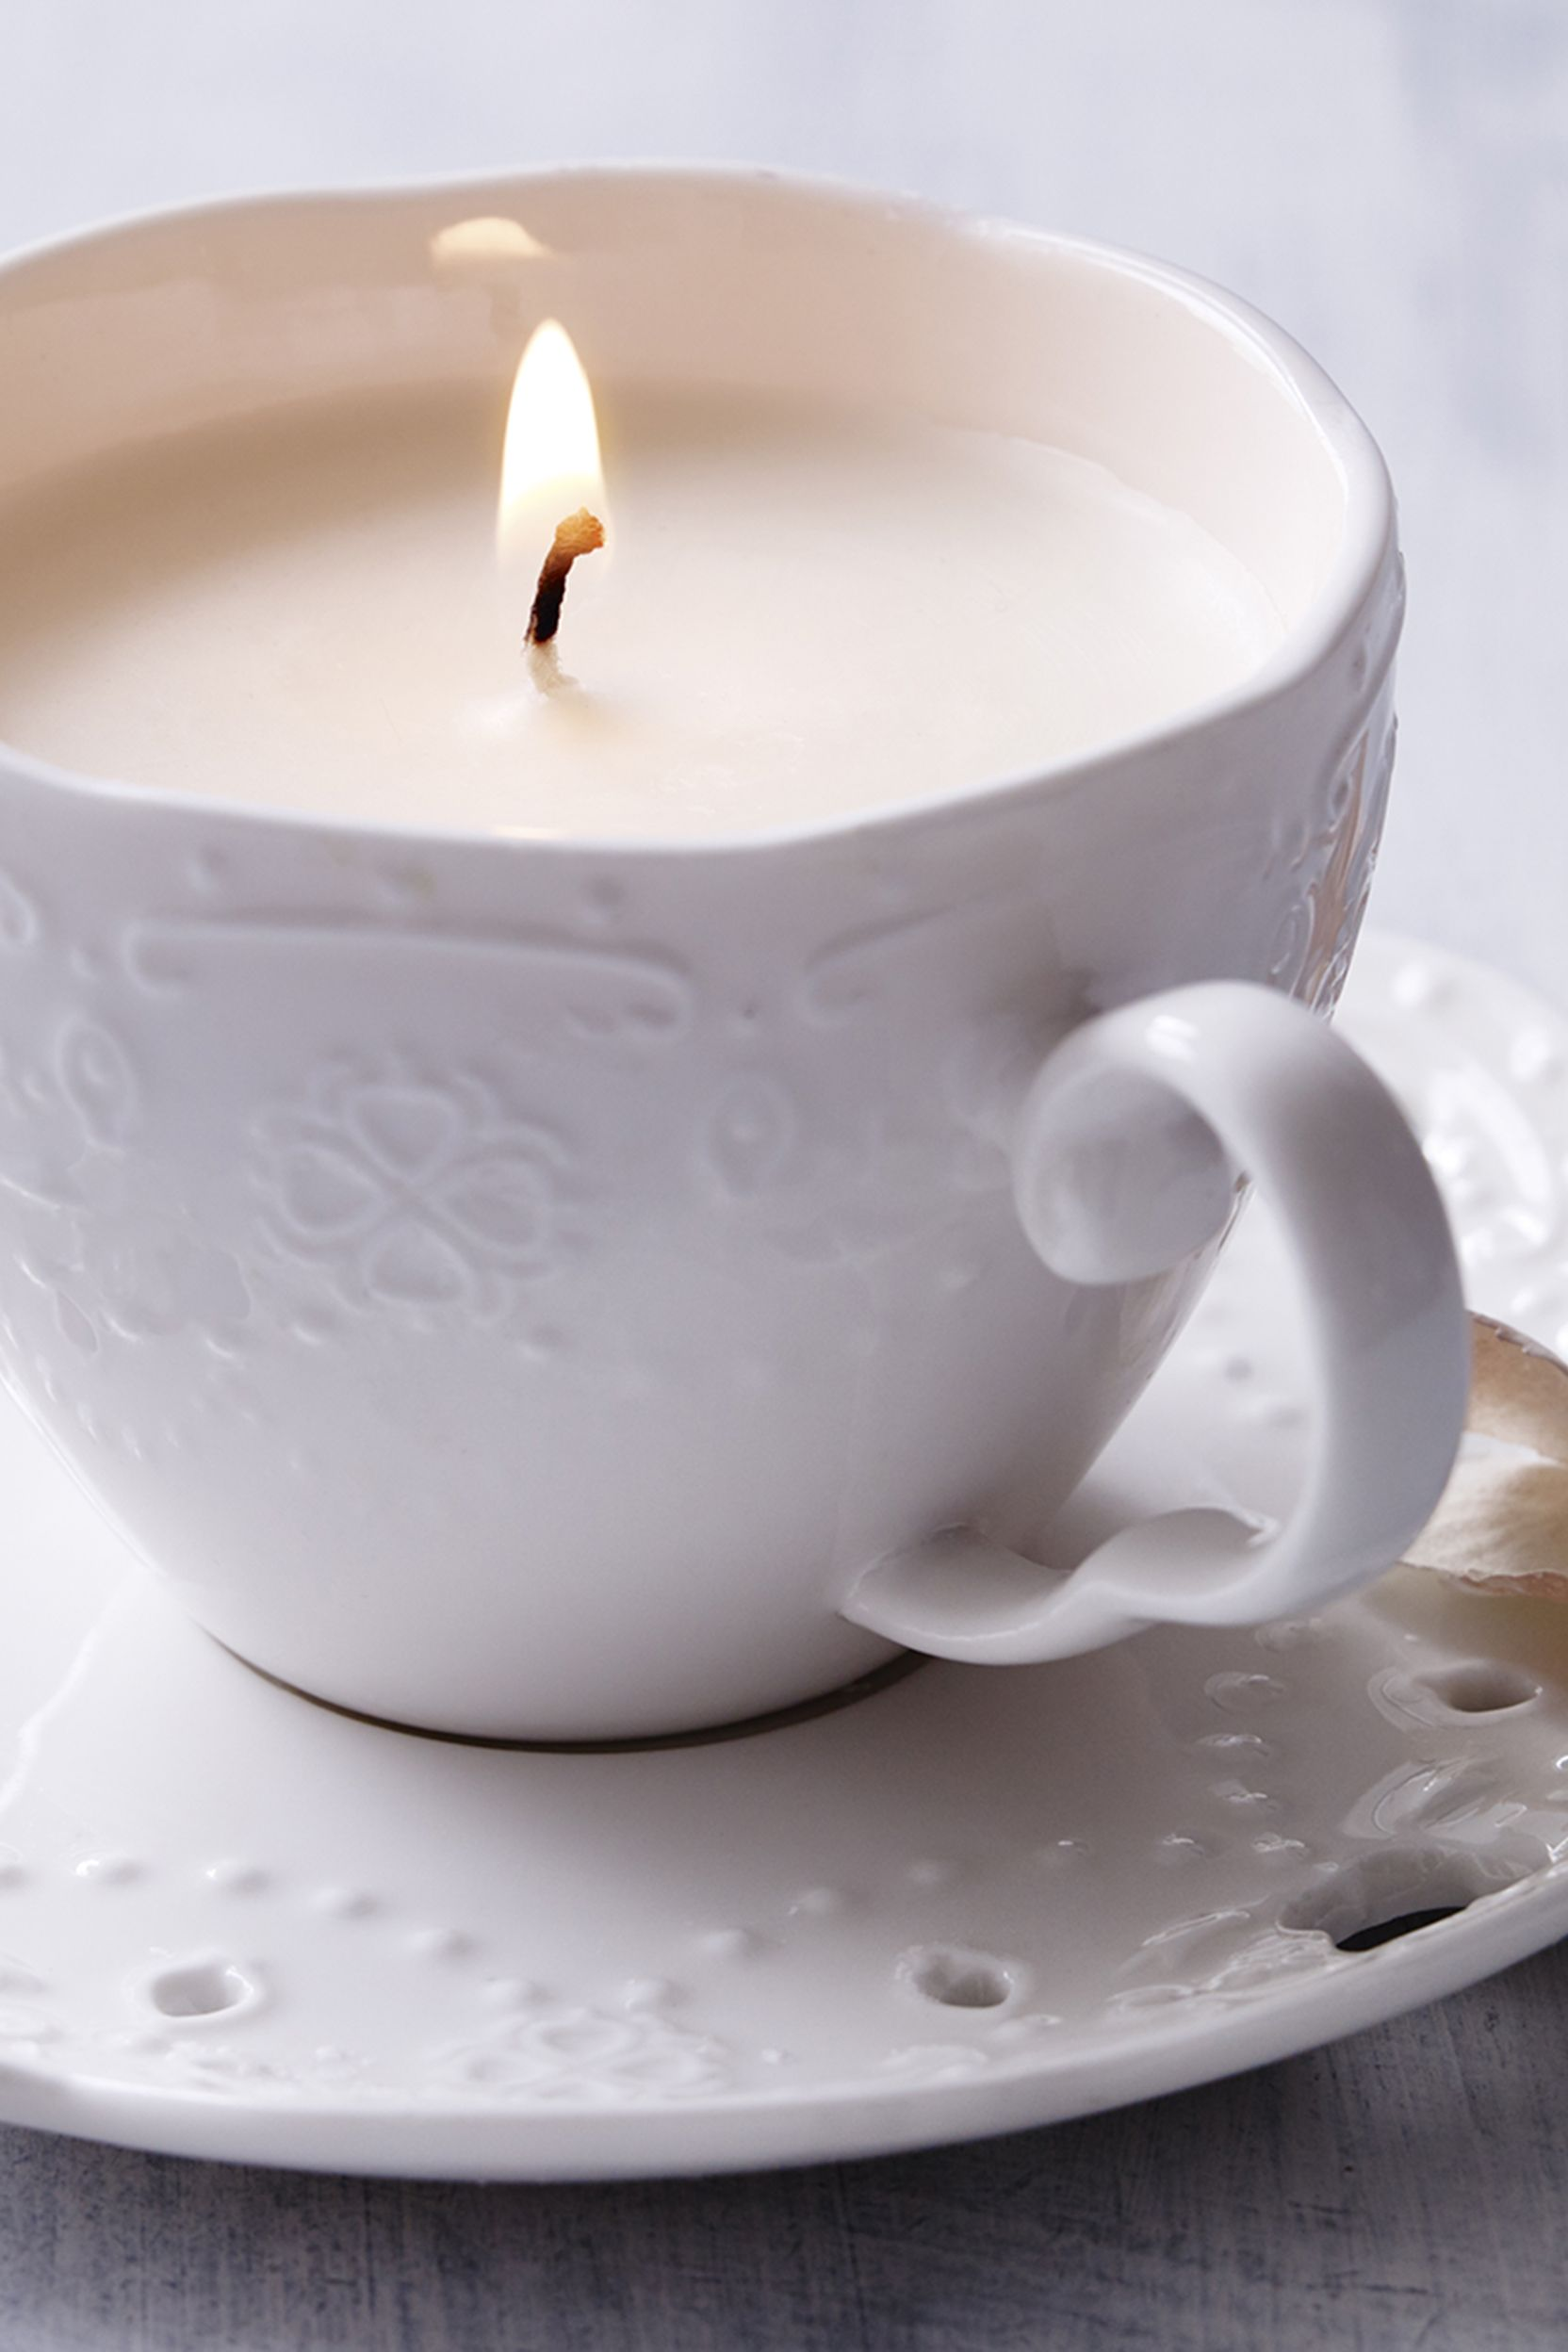 A twist on a family home favourite - a candle in a tea cup is super-chic, modern yet sophisticated.